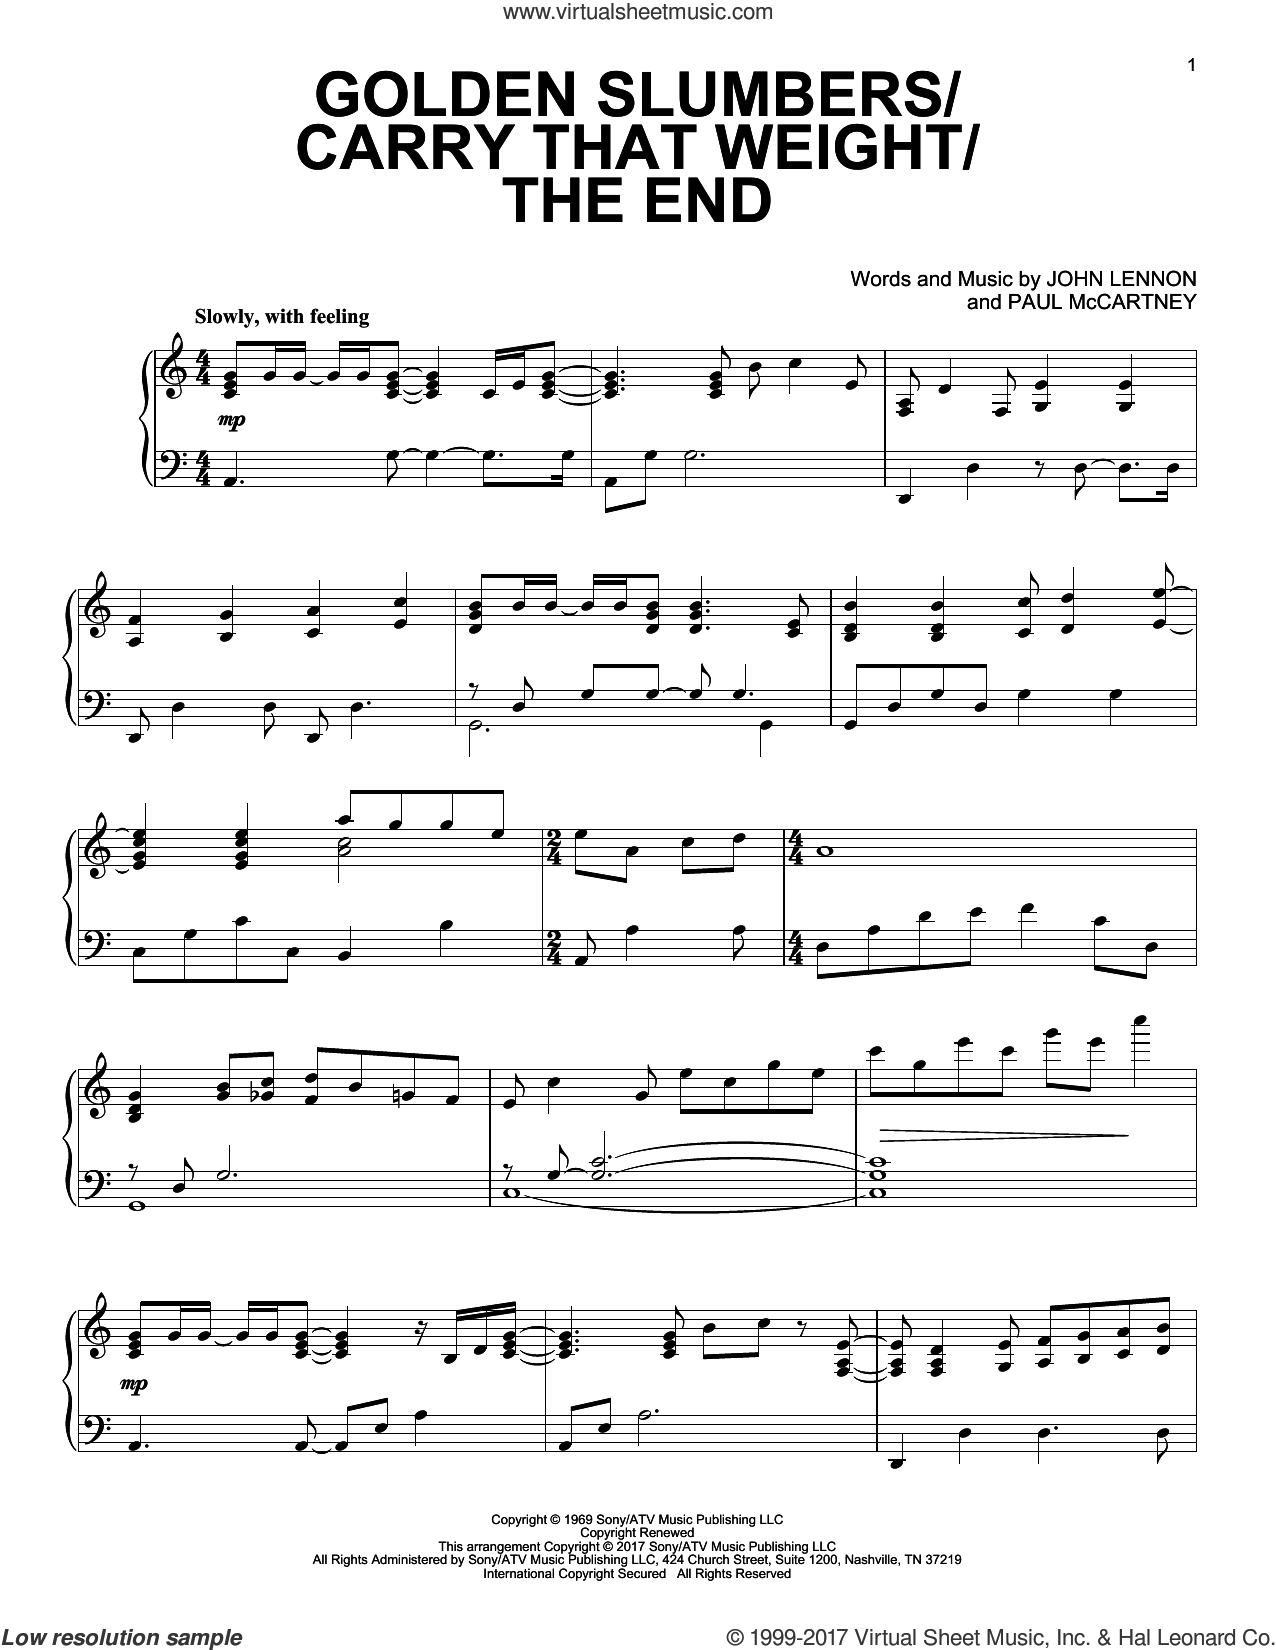 Golden Slumbers/Carry That Weight/The End sheet music for piano solo by Paul McCartney and John Lennon, intermediate skill level